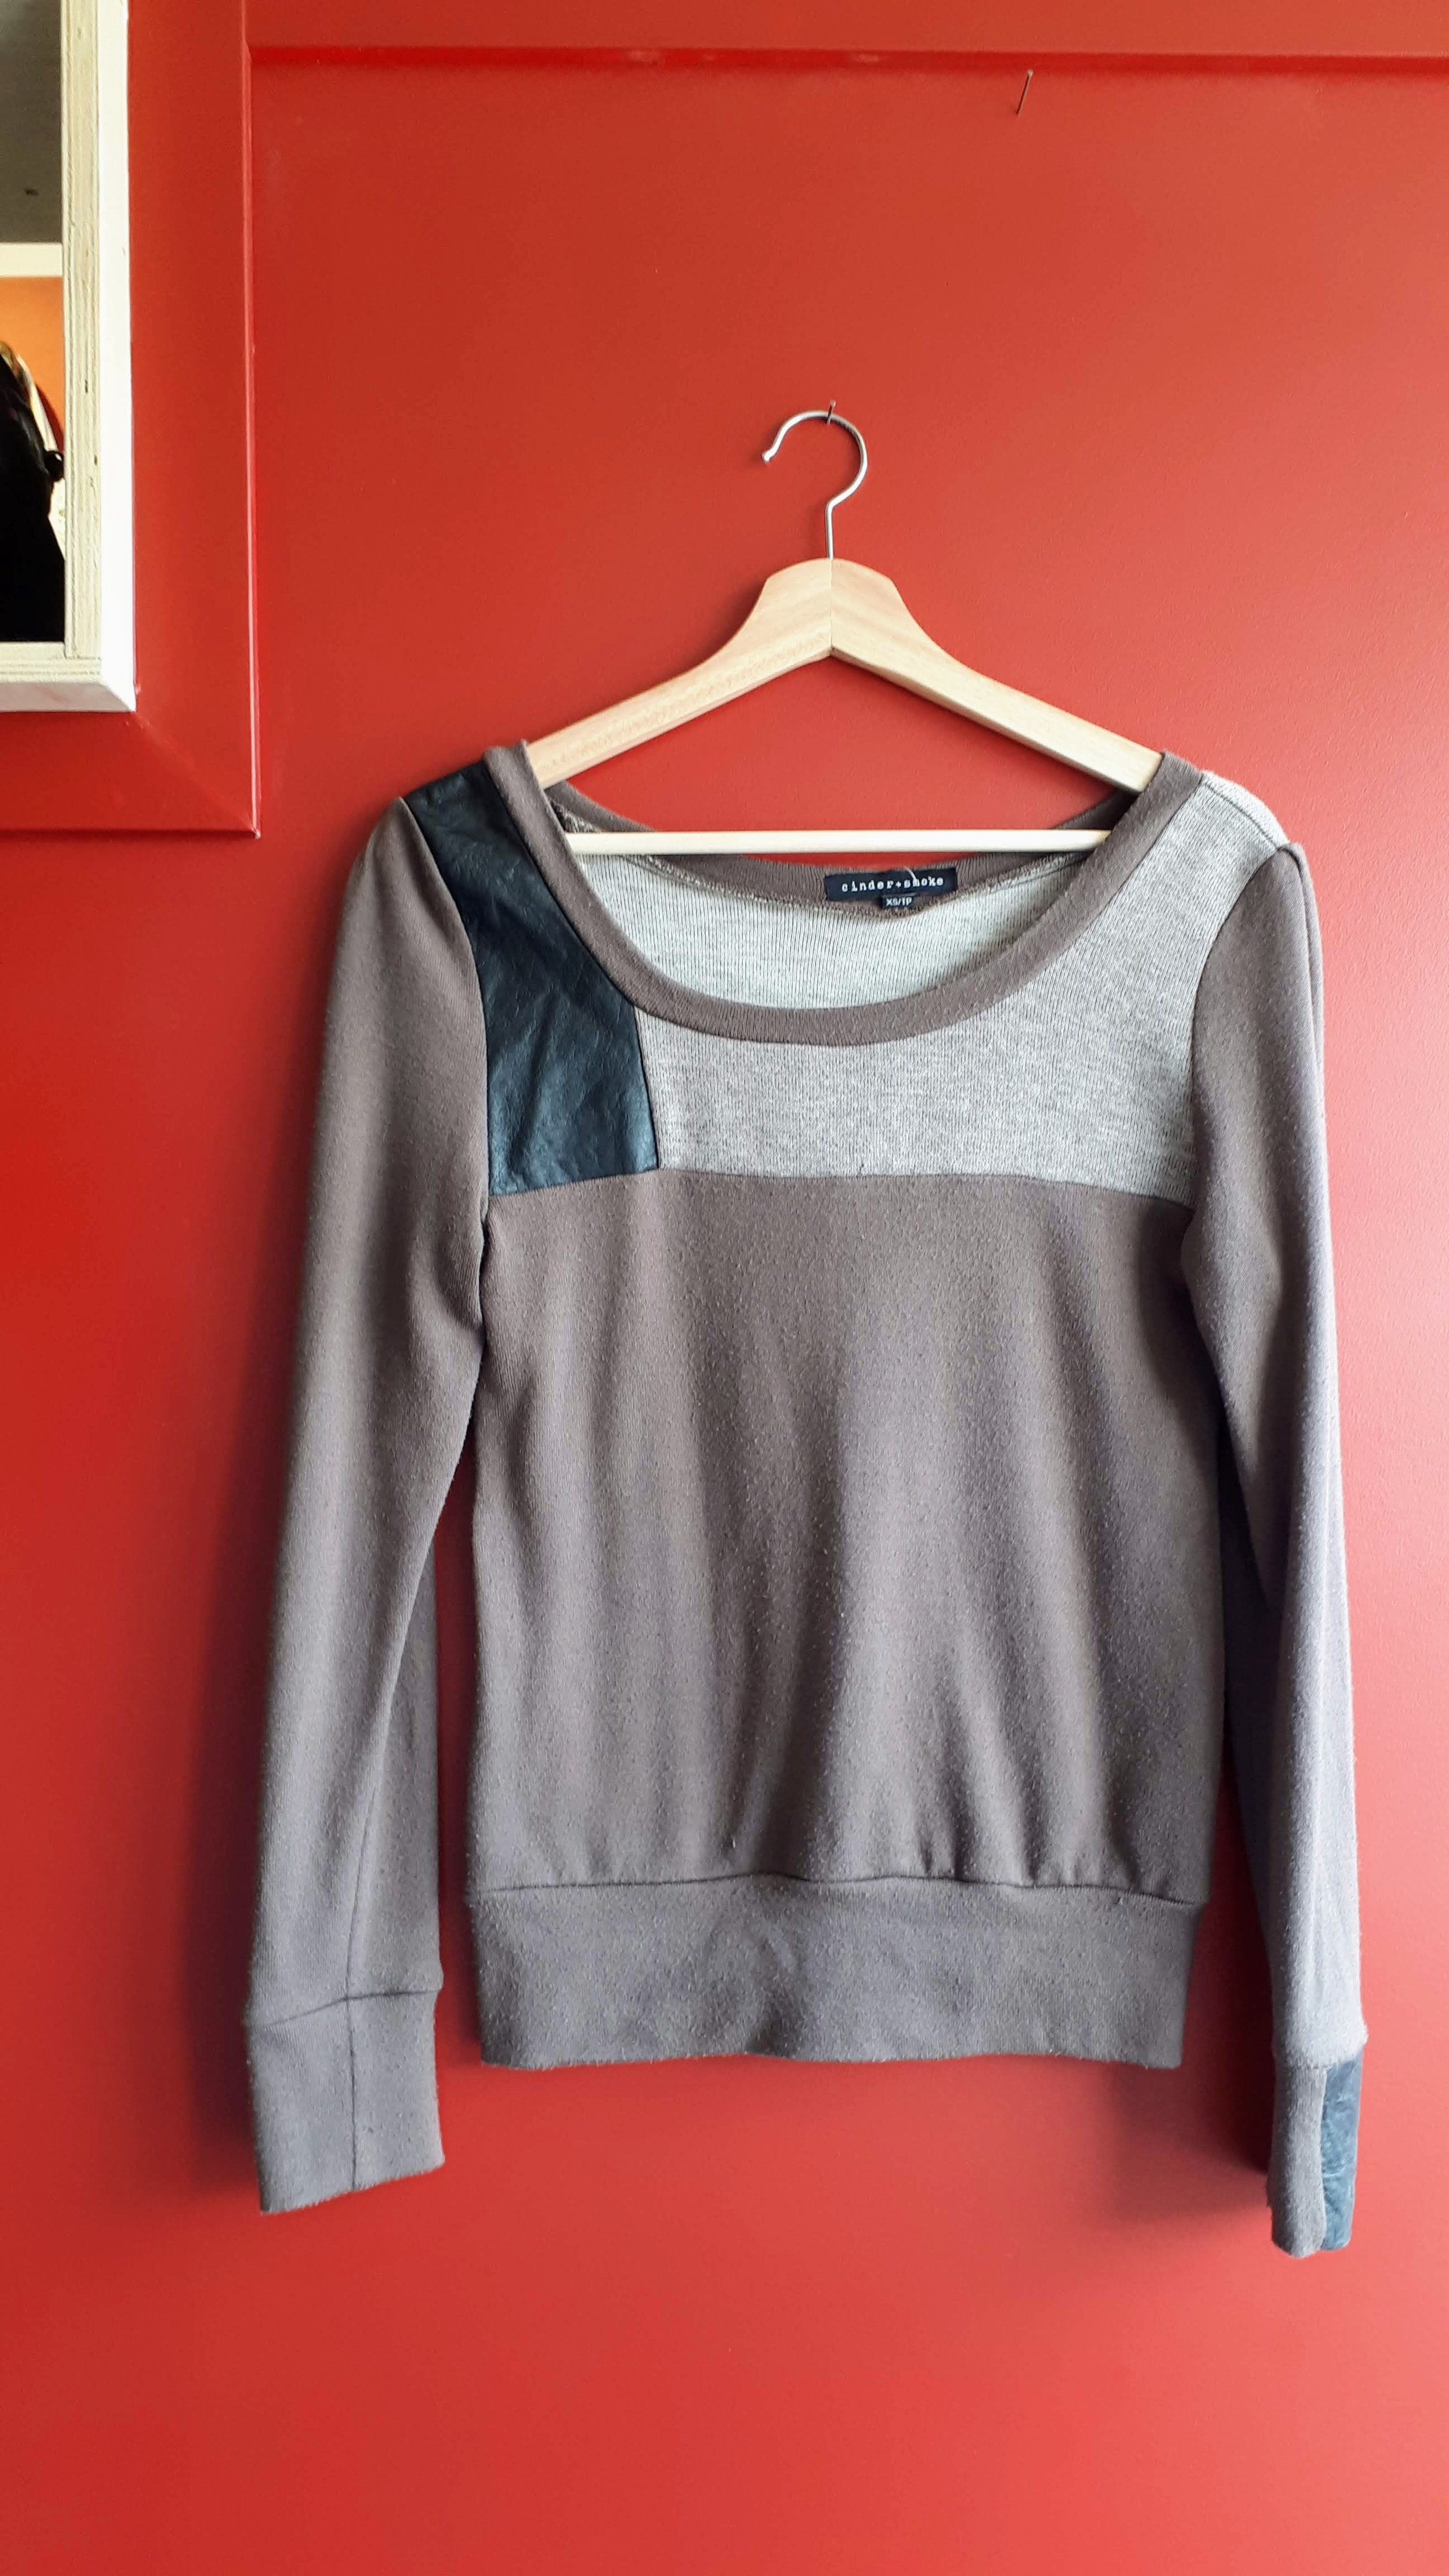 Cinder+Smoke top; Size S, $24 (on sale for $12!)